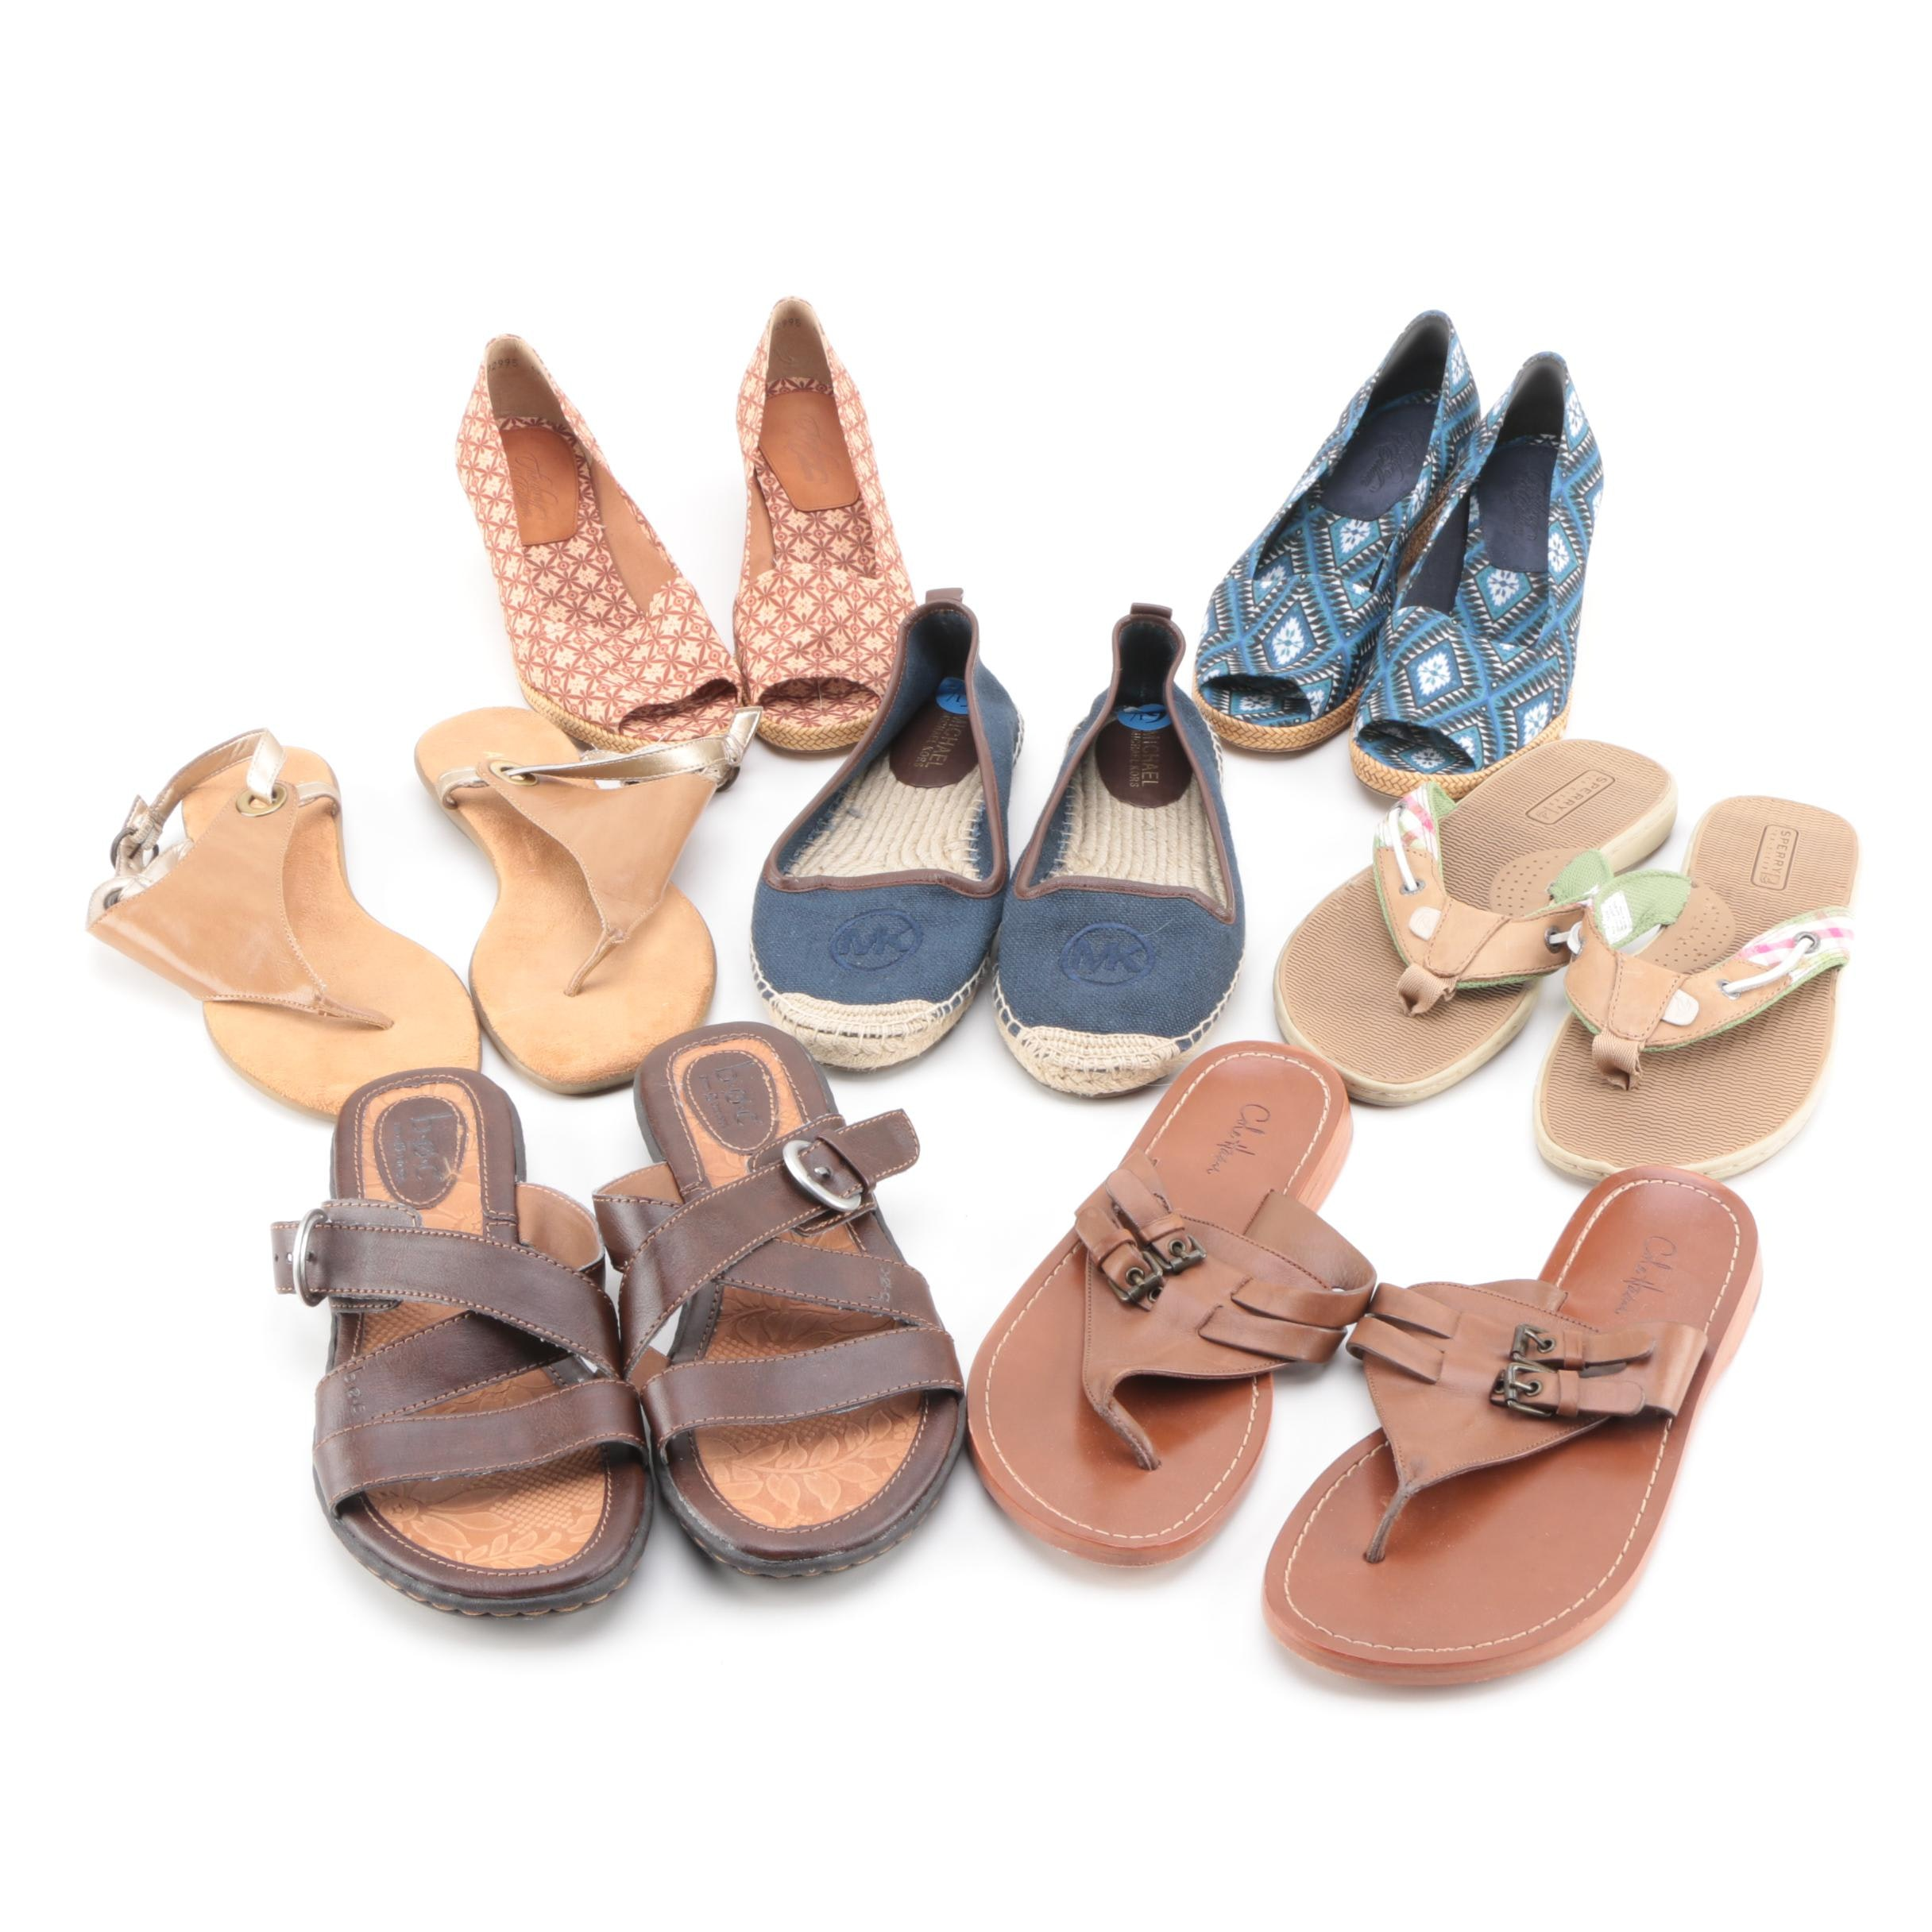 Women's Sandals, Wedges and Espadrilles Including Cole Haan and Stuart Weitzman